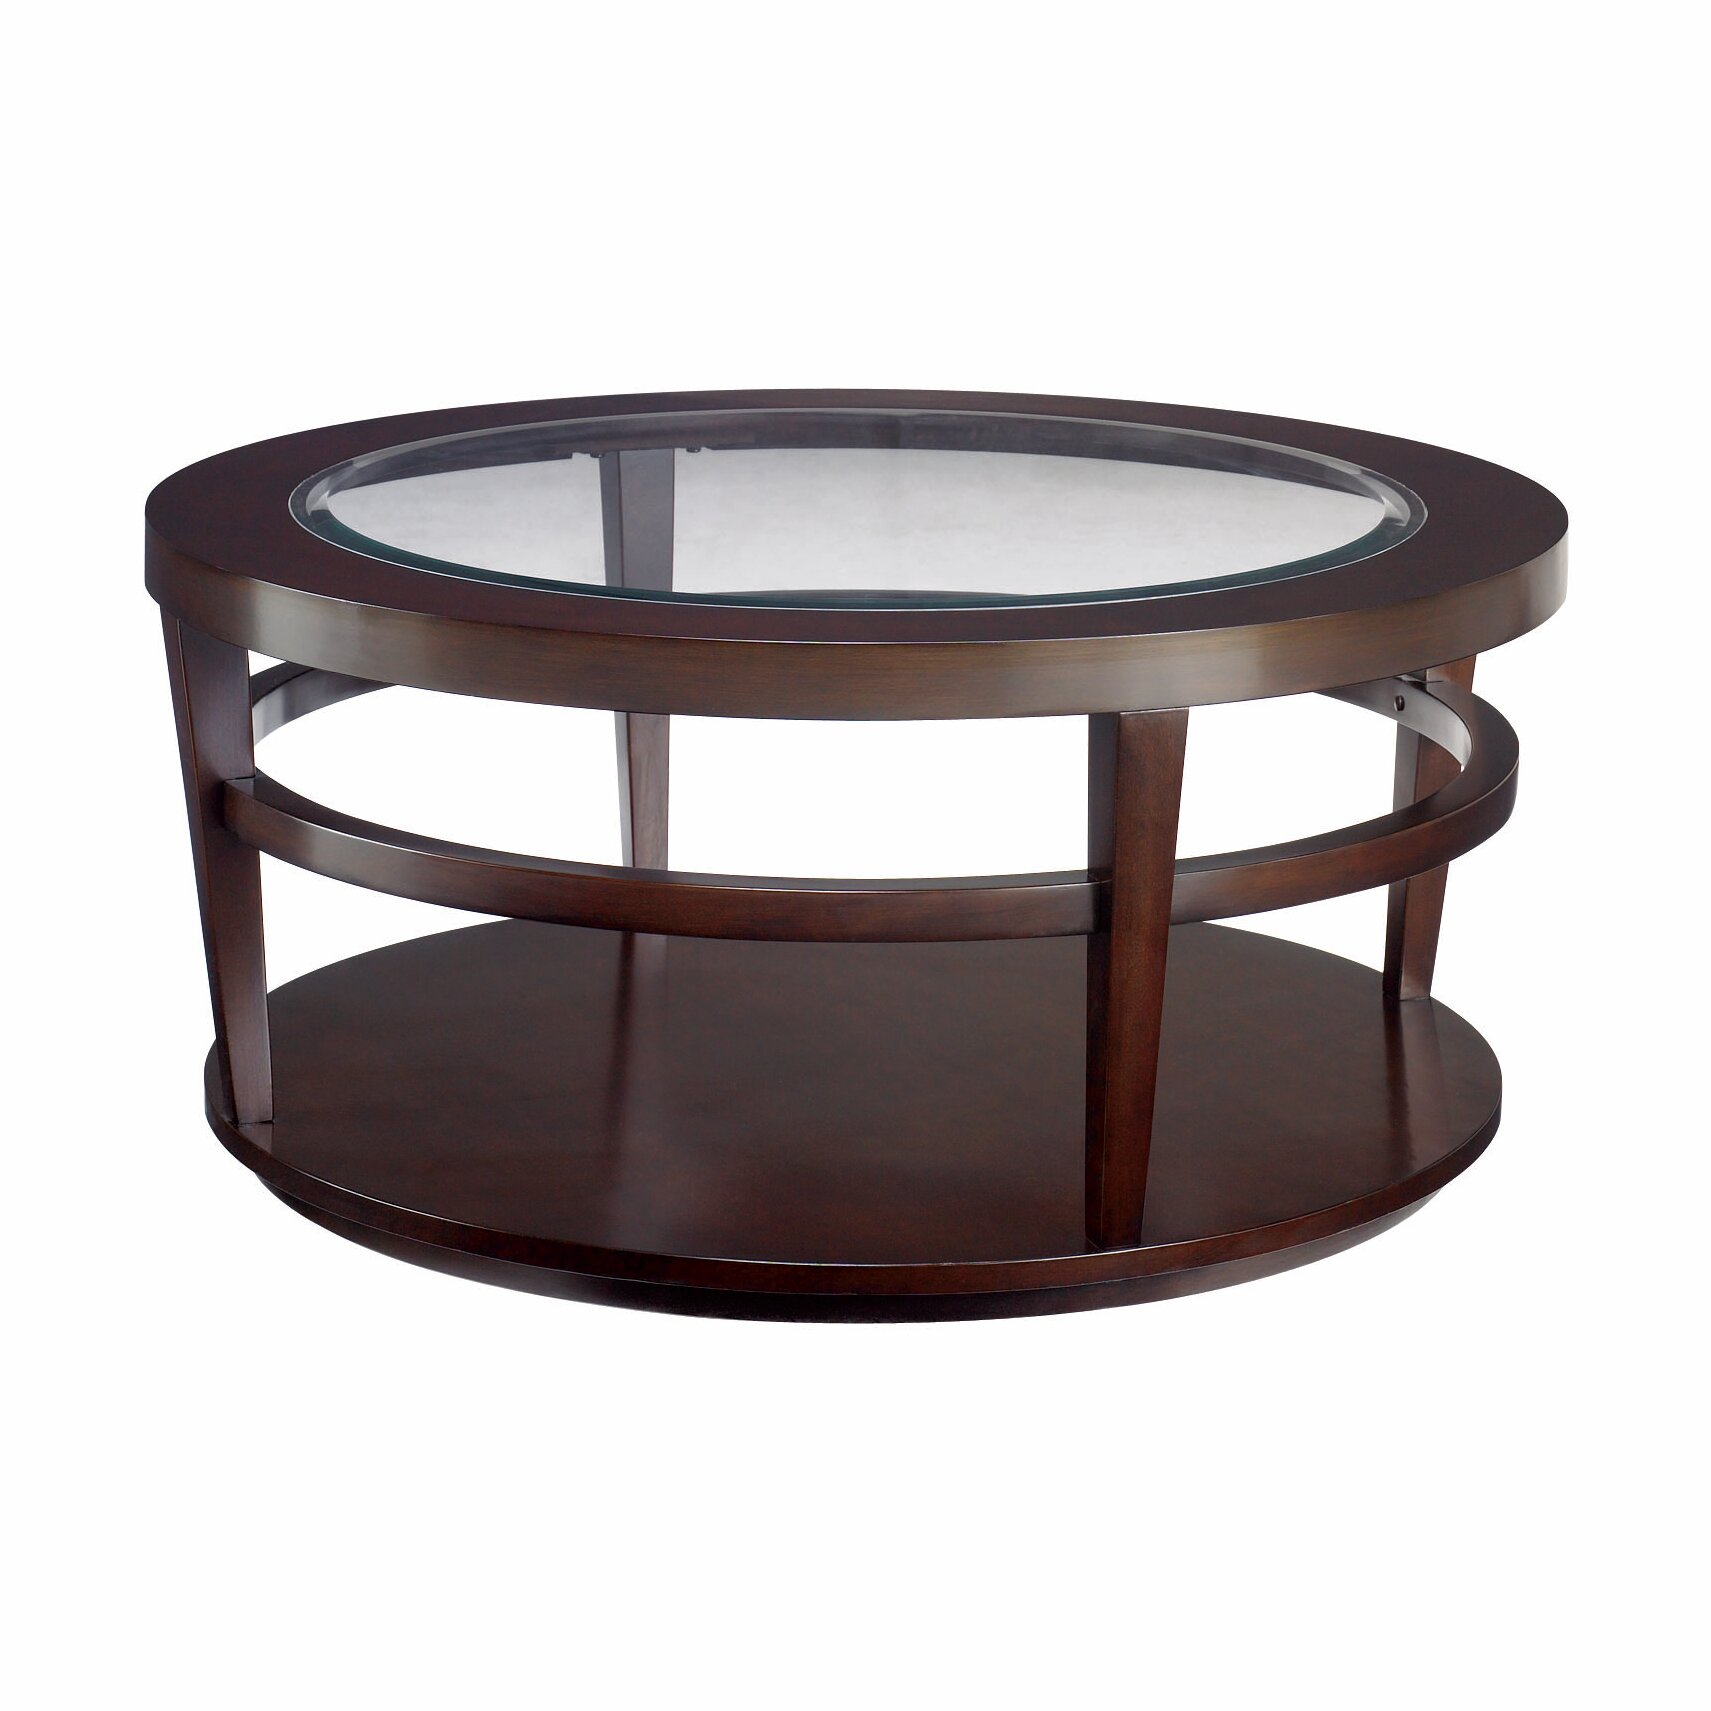 Darby Home Co Bolden Coffee Table & Reviews